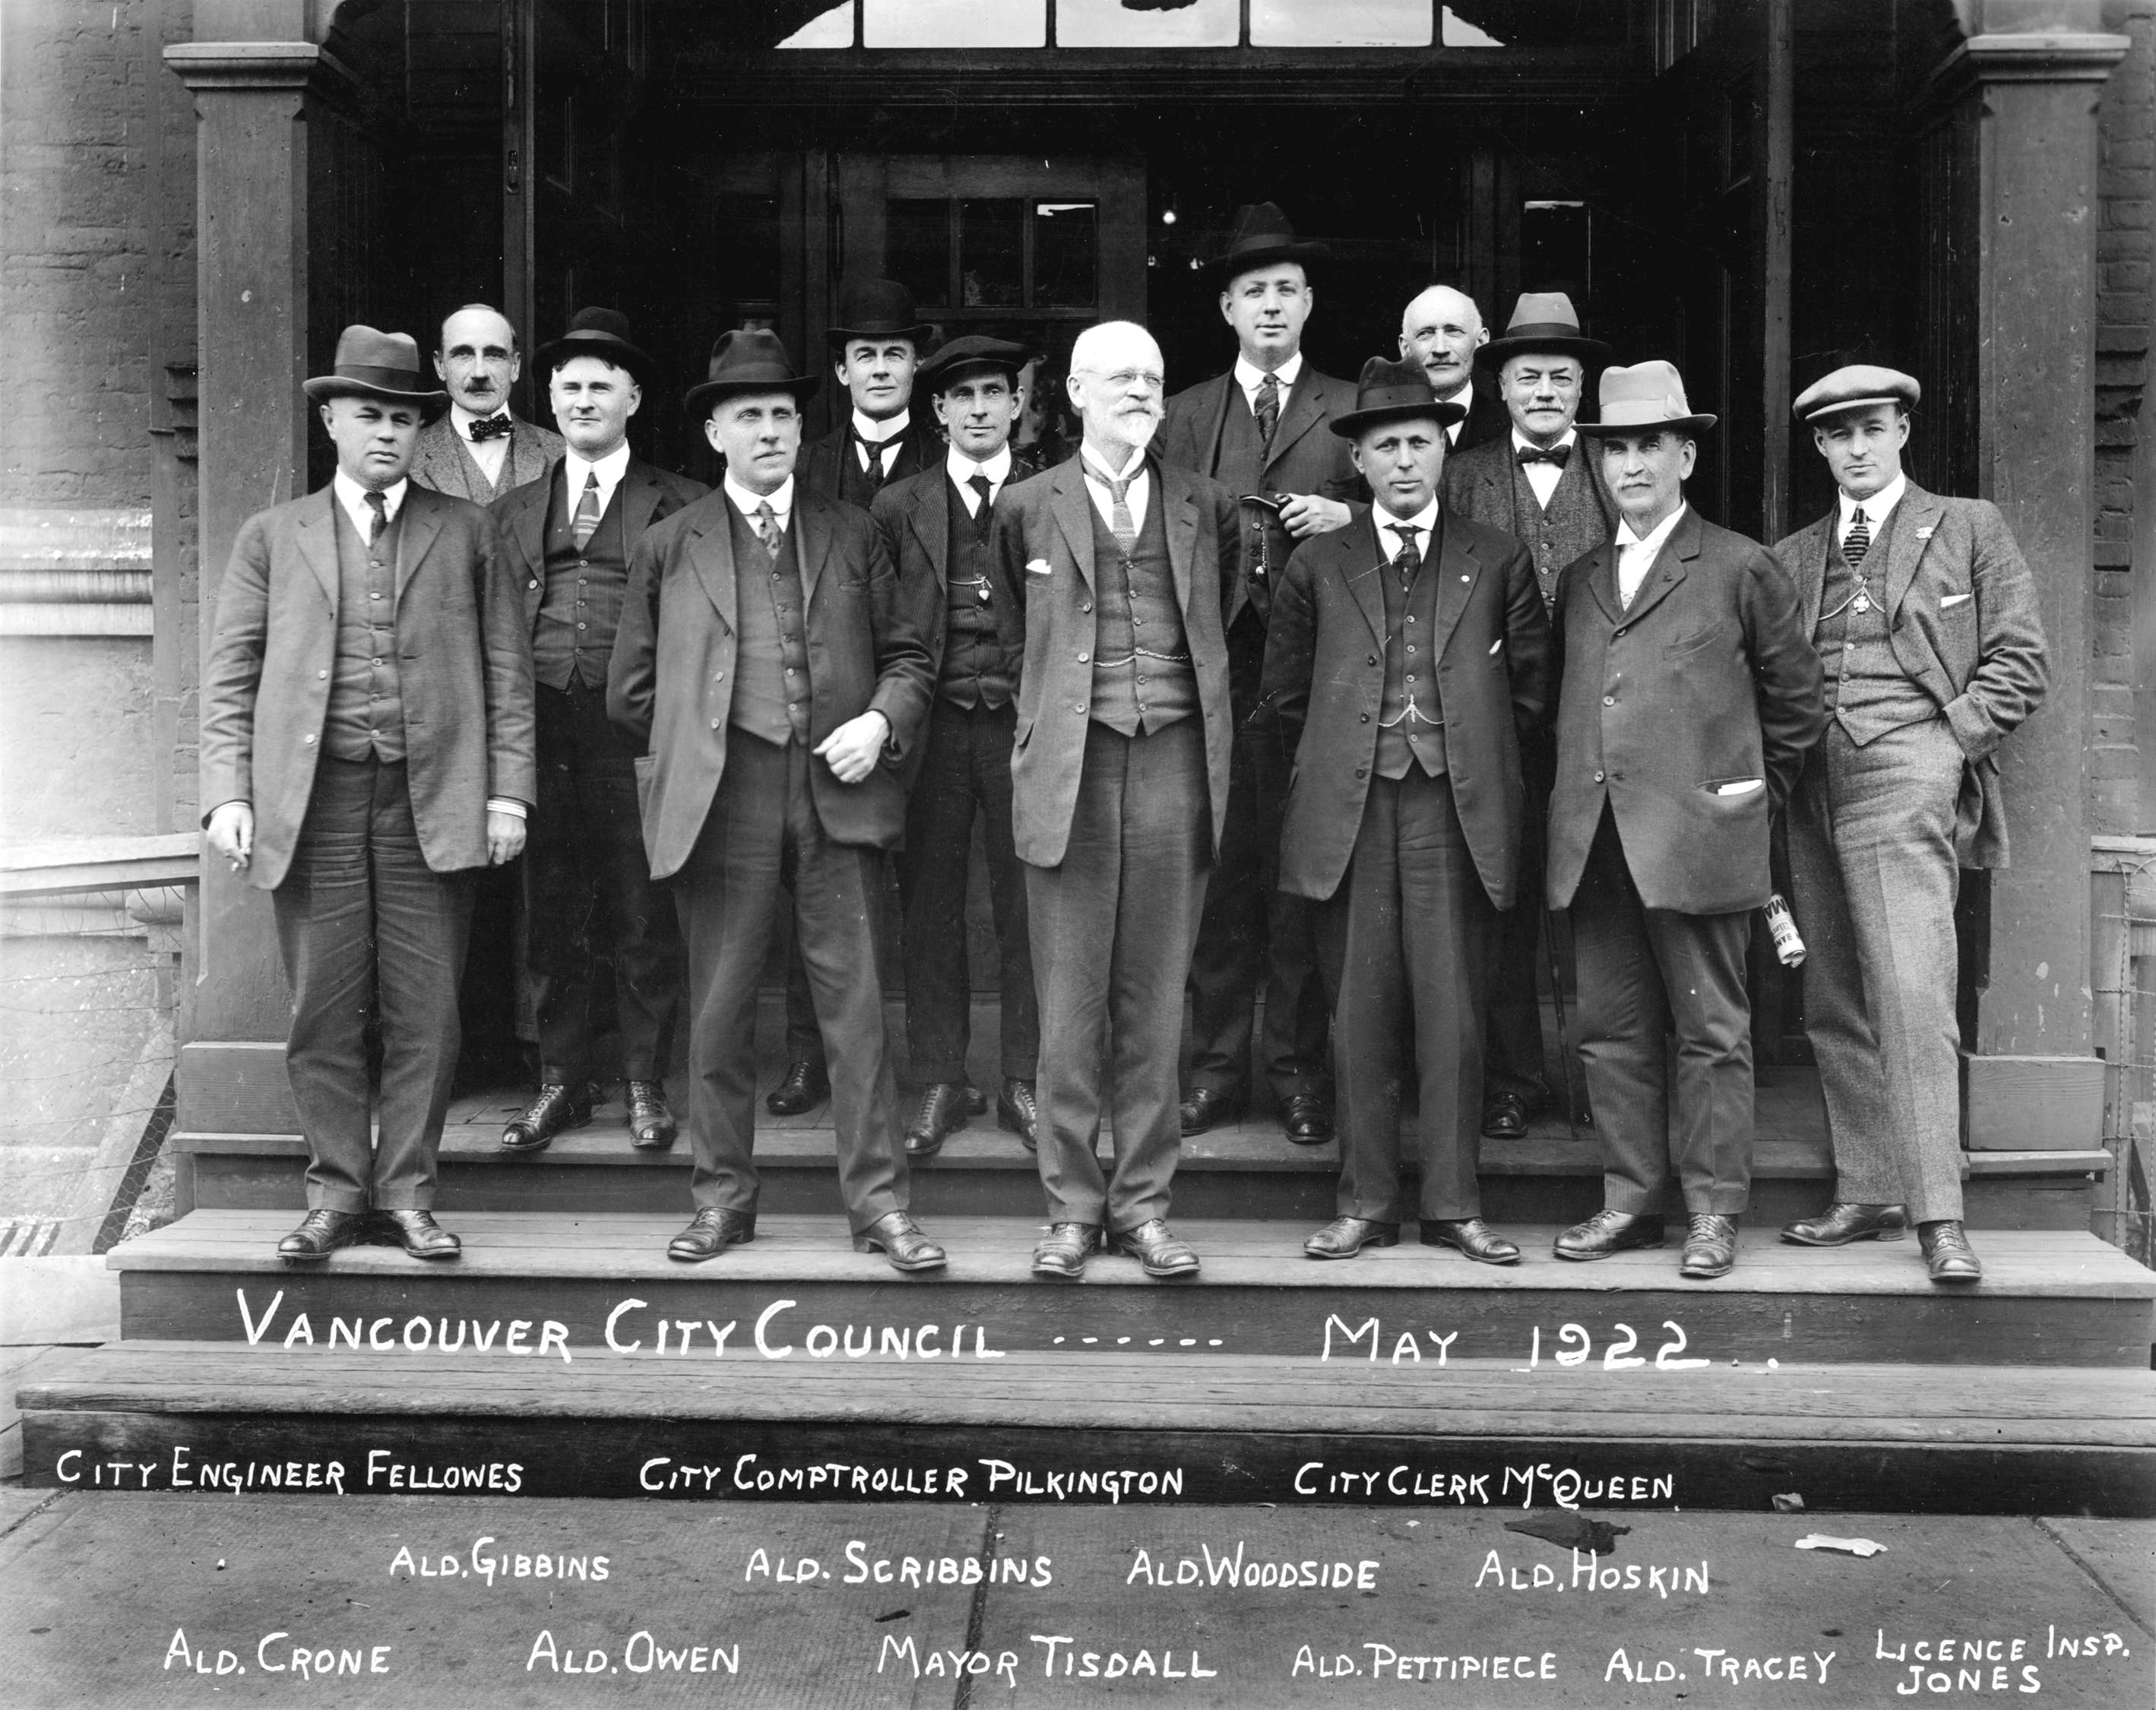 http://upload.wikimedia.org/wikipedia/commons/8/80/Vancouver_City_Council_1922.jpg